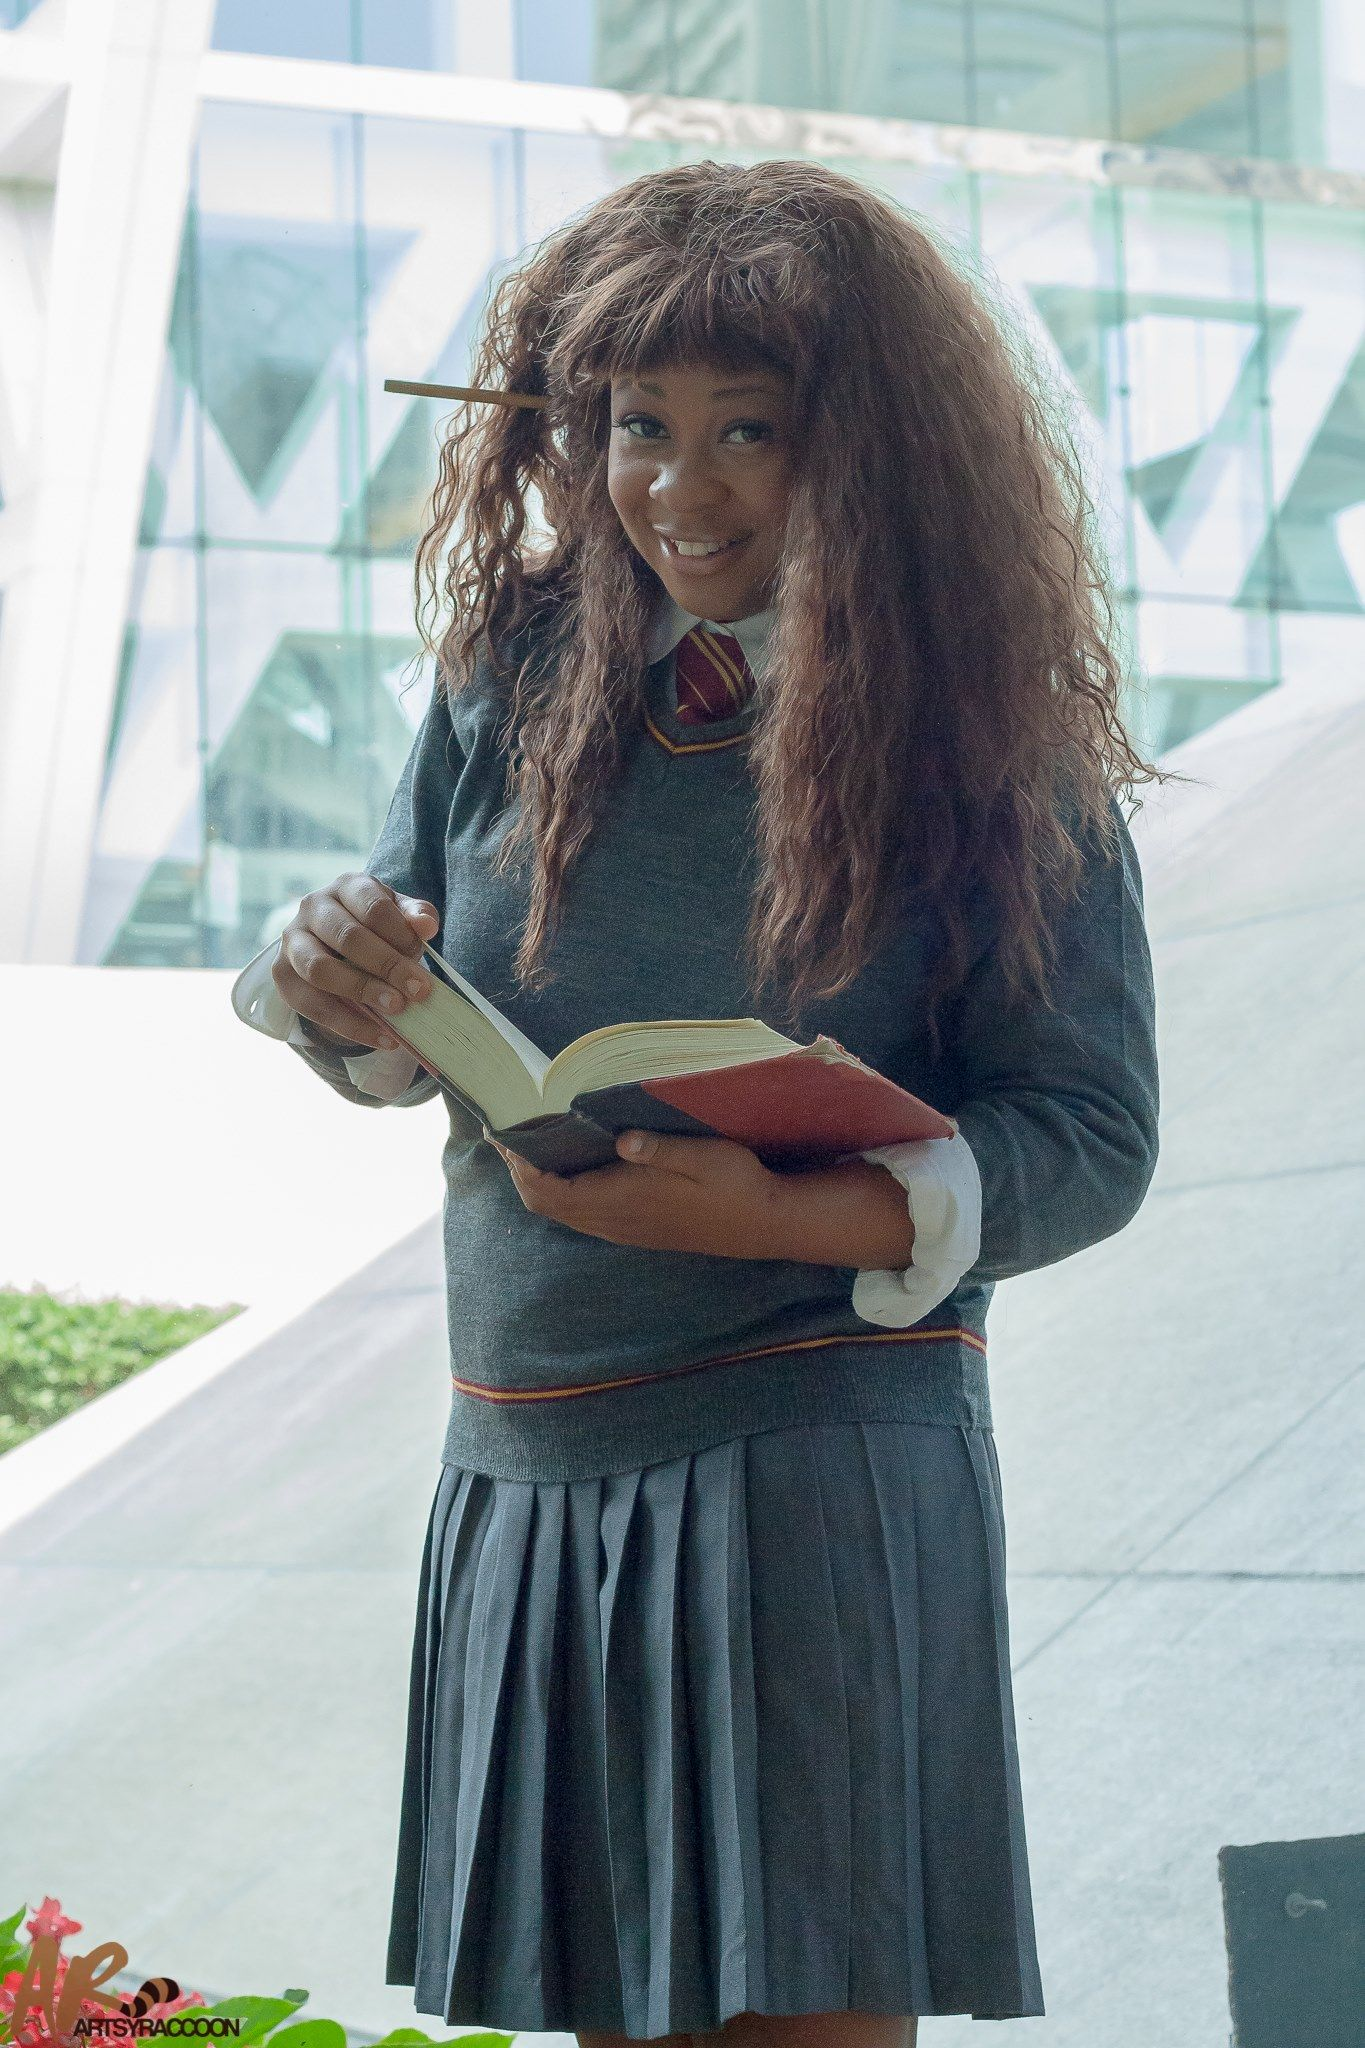 Awesome Hermione Granger by Khaleesi Cosplay.<--wow that is total Hermione